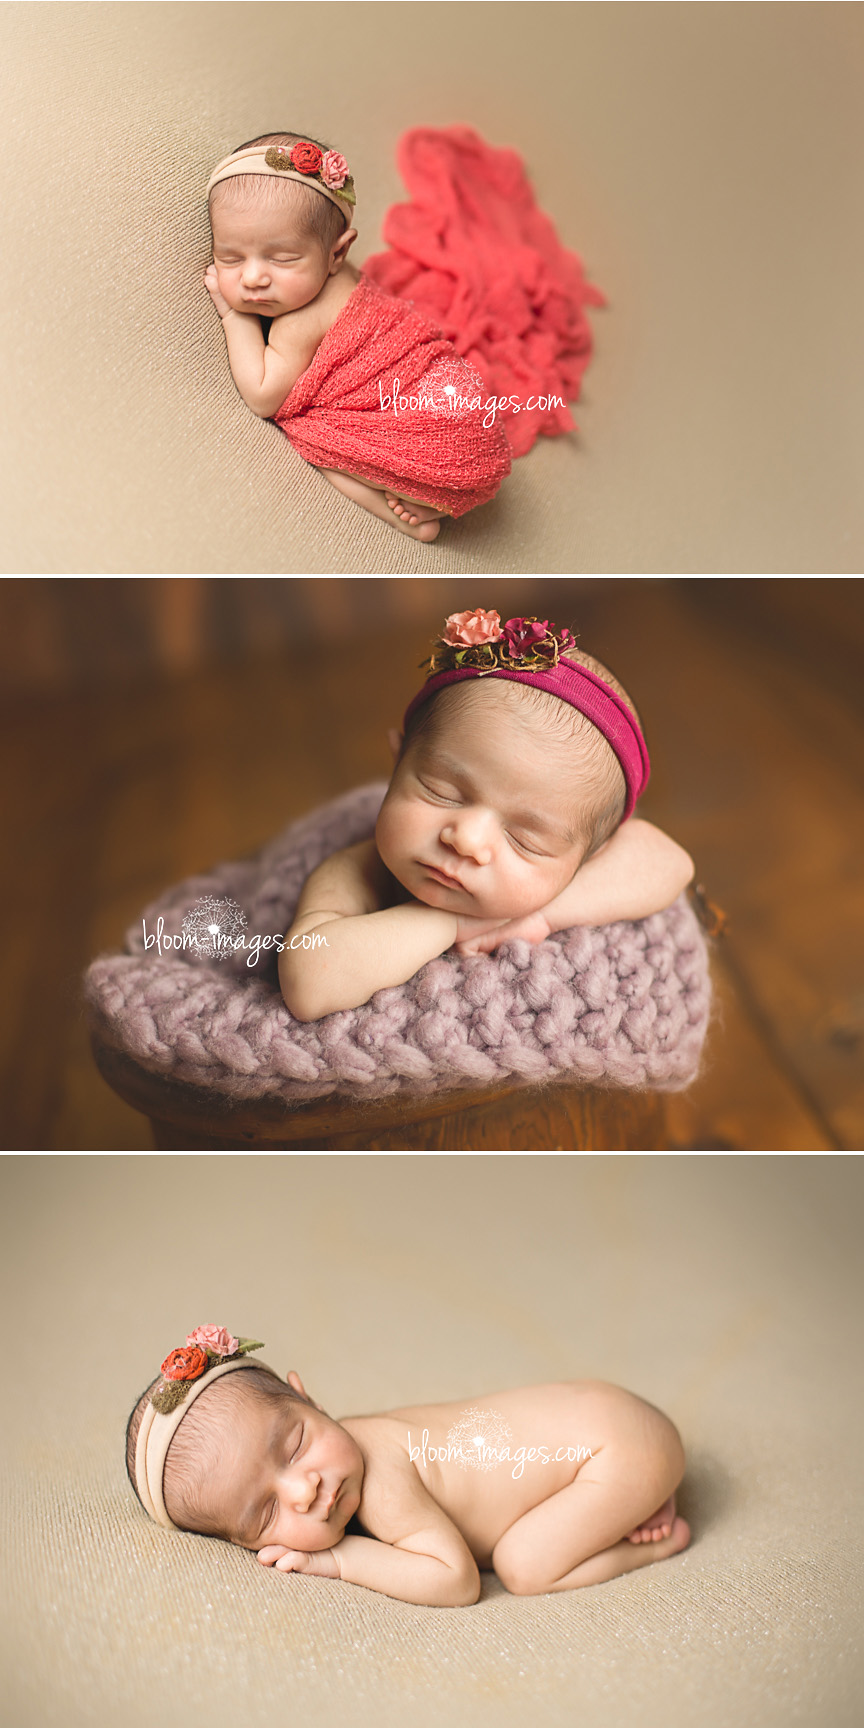 Fairfax-VA-Newborn-Photographer-infat-fall-collors-set-ups